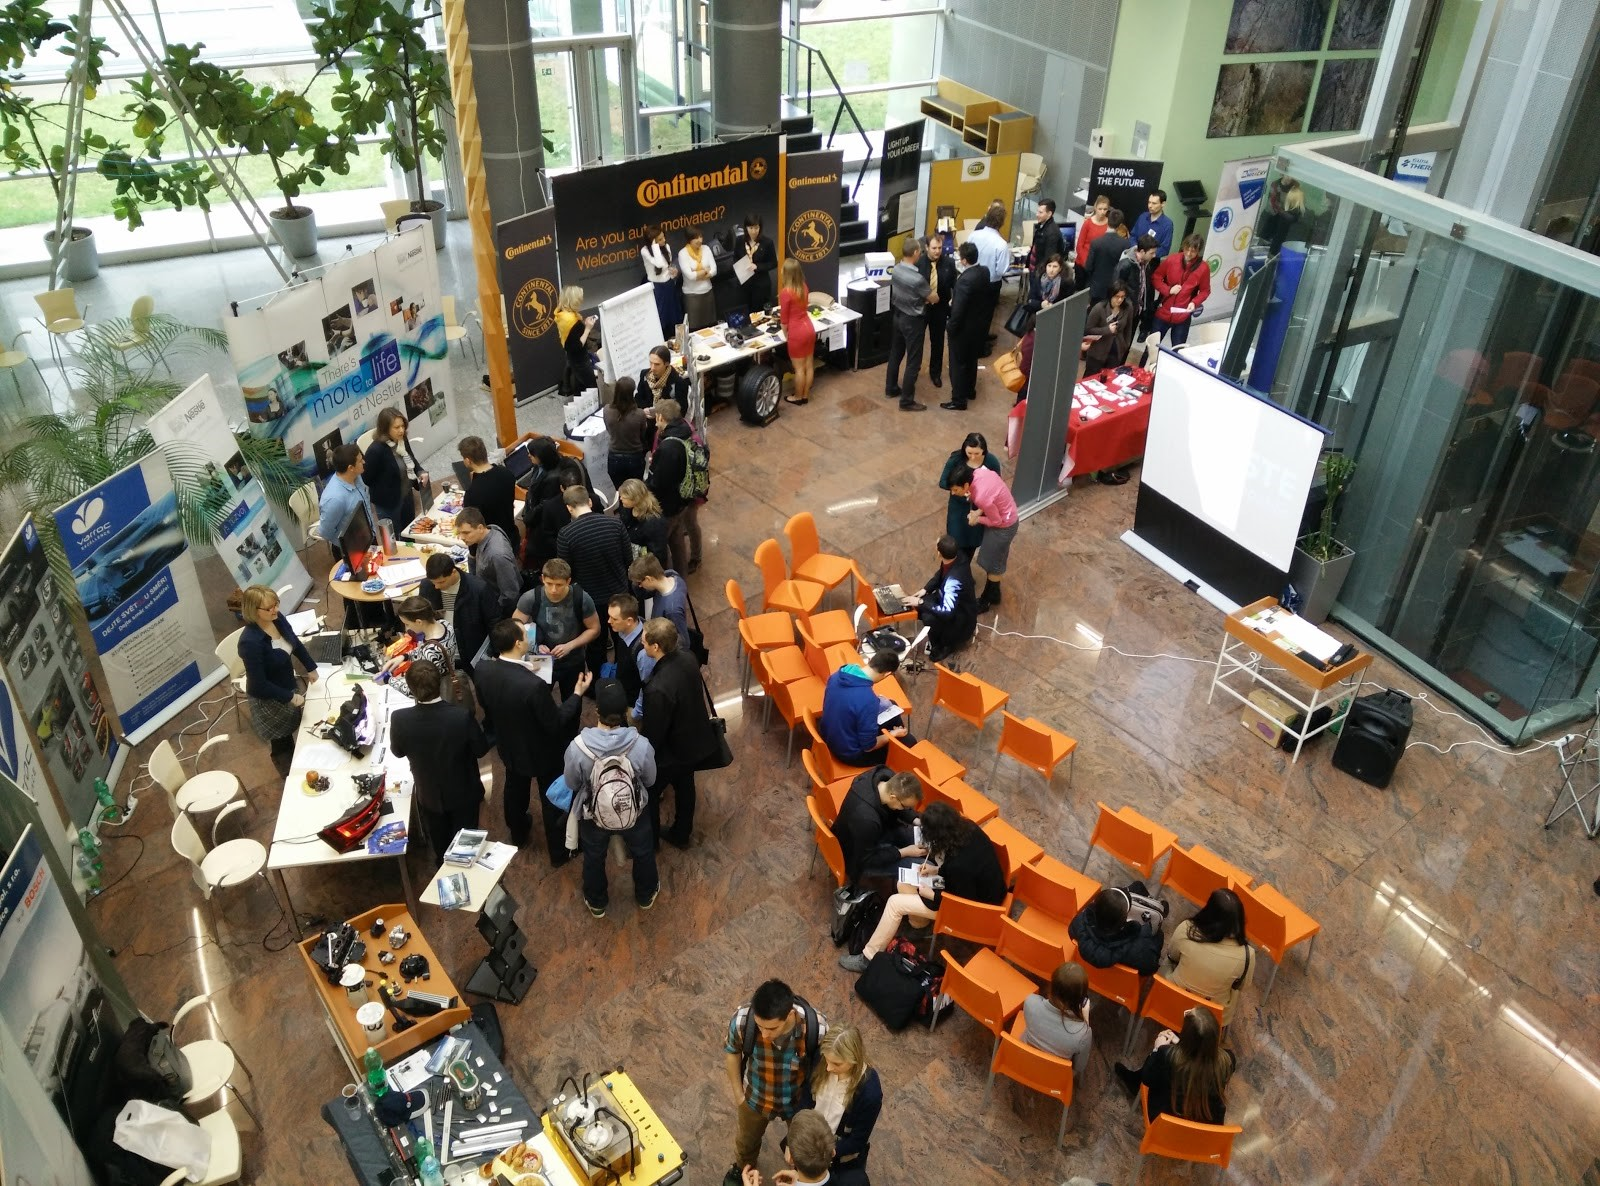 Overview of the job fair